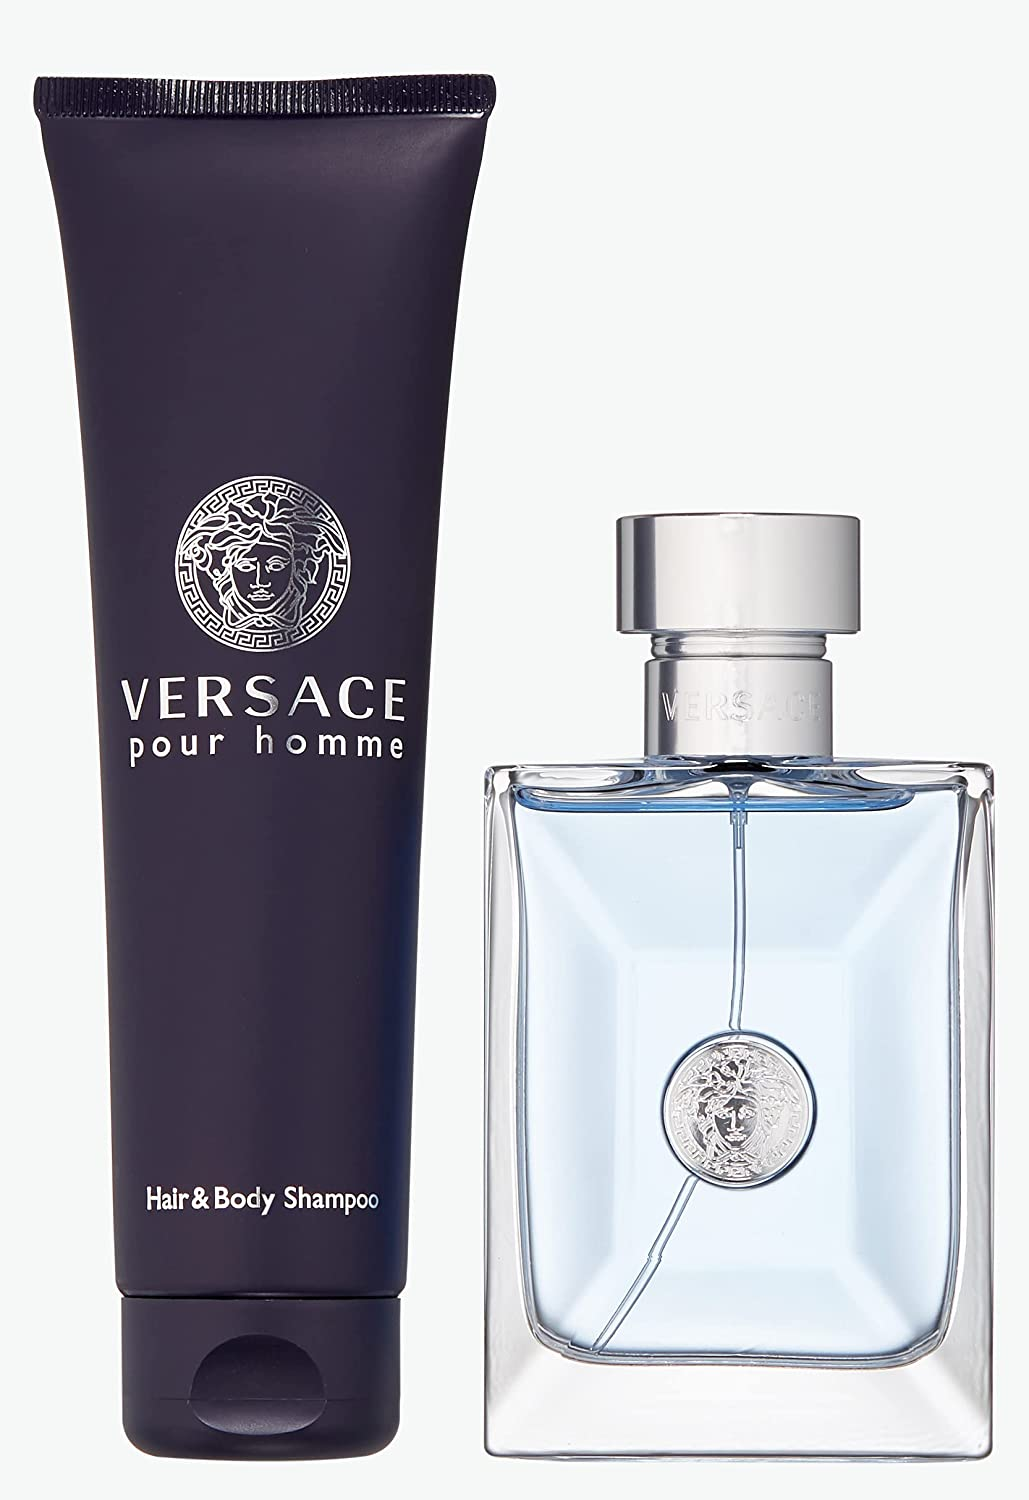 Versace Pour Homme Men 2 pieces Free shipping anywhere in the nation Gift 3.4 Toilette Houston Mall De Oz Eau Set